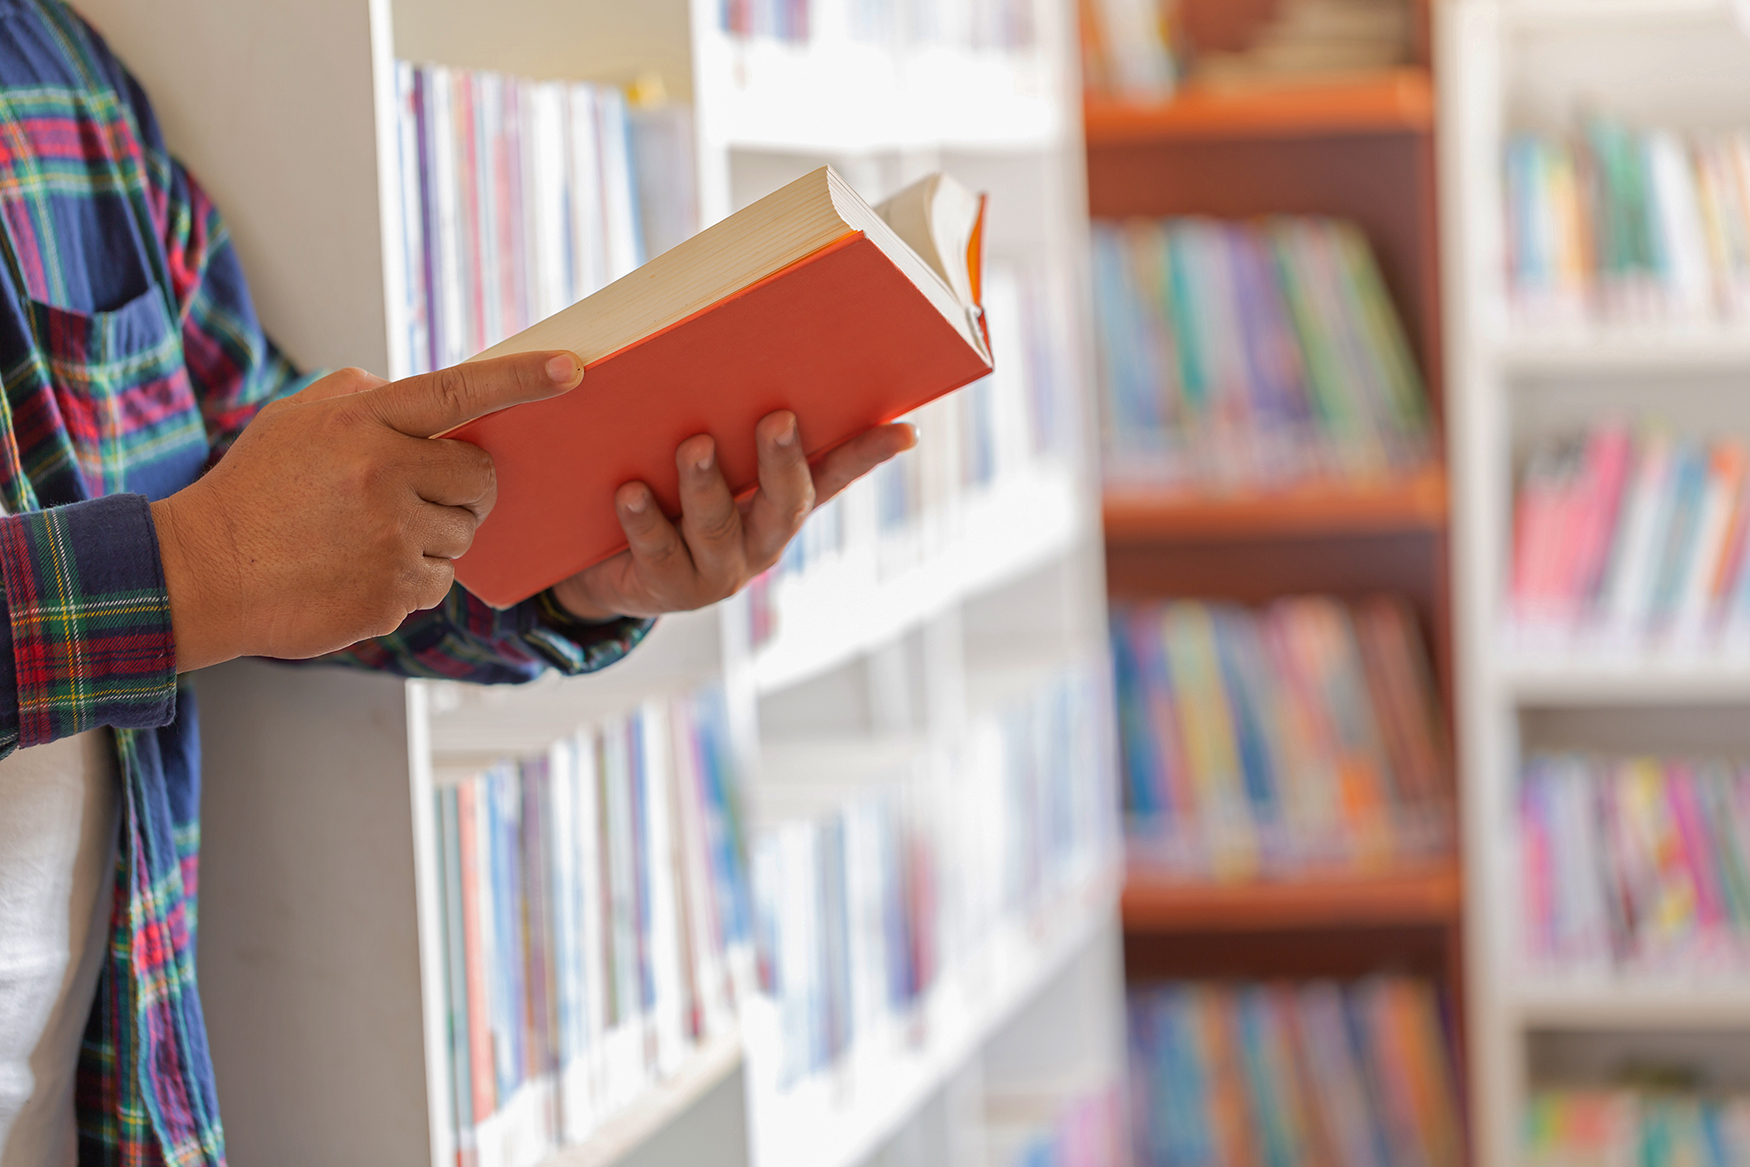 Image close-up of a person holding a book while standing around many bookshelves.